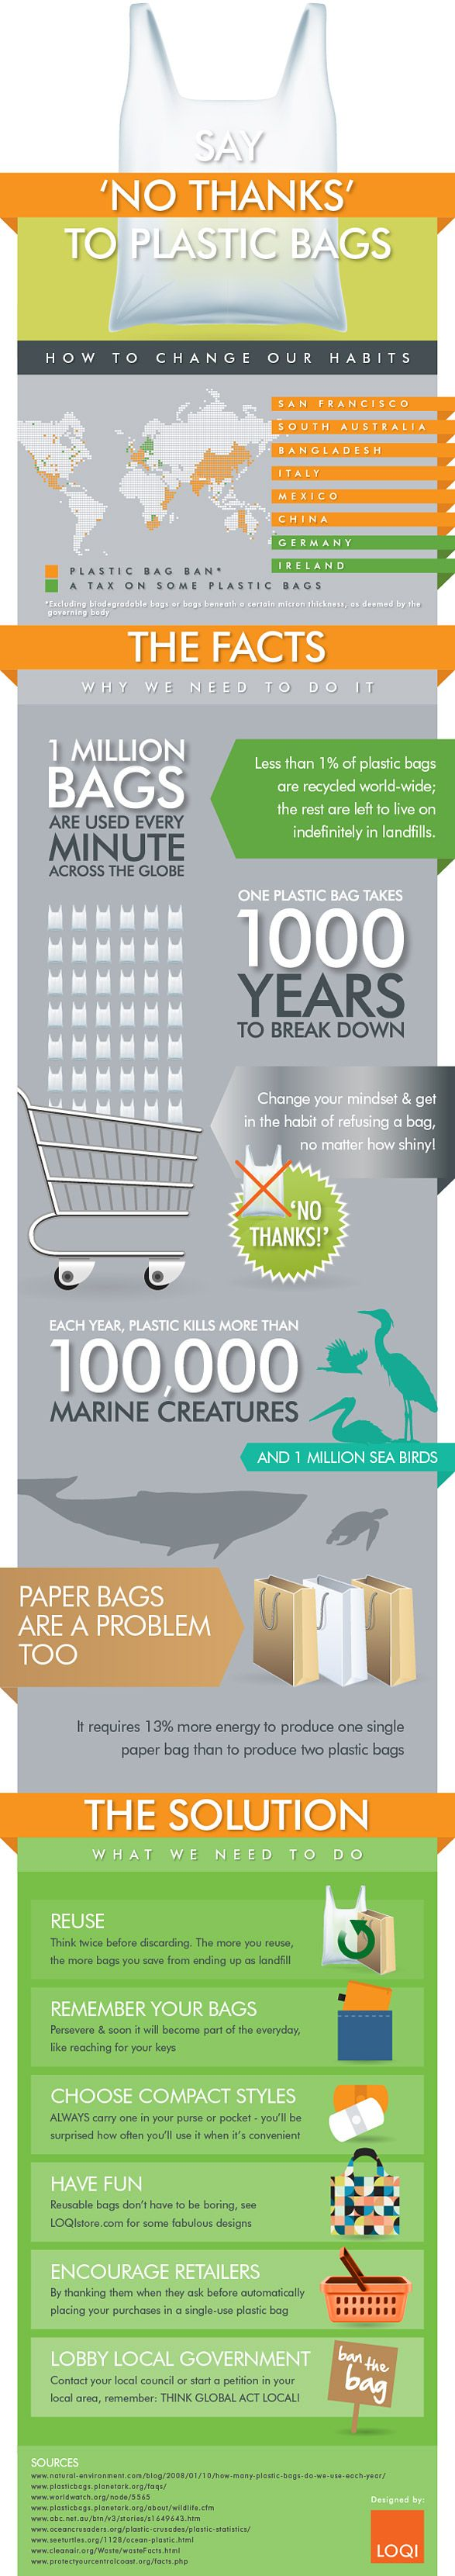 Why Reusable Bags? - Check out this infogram about the harmful effects of plastic bags.